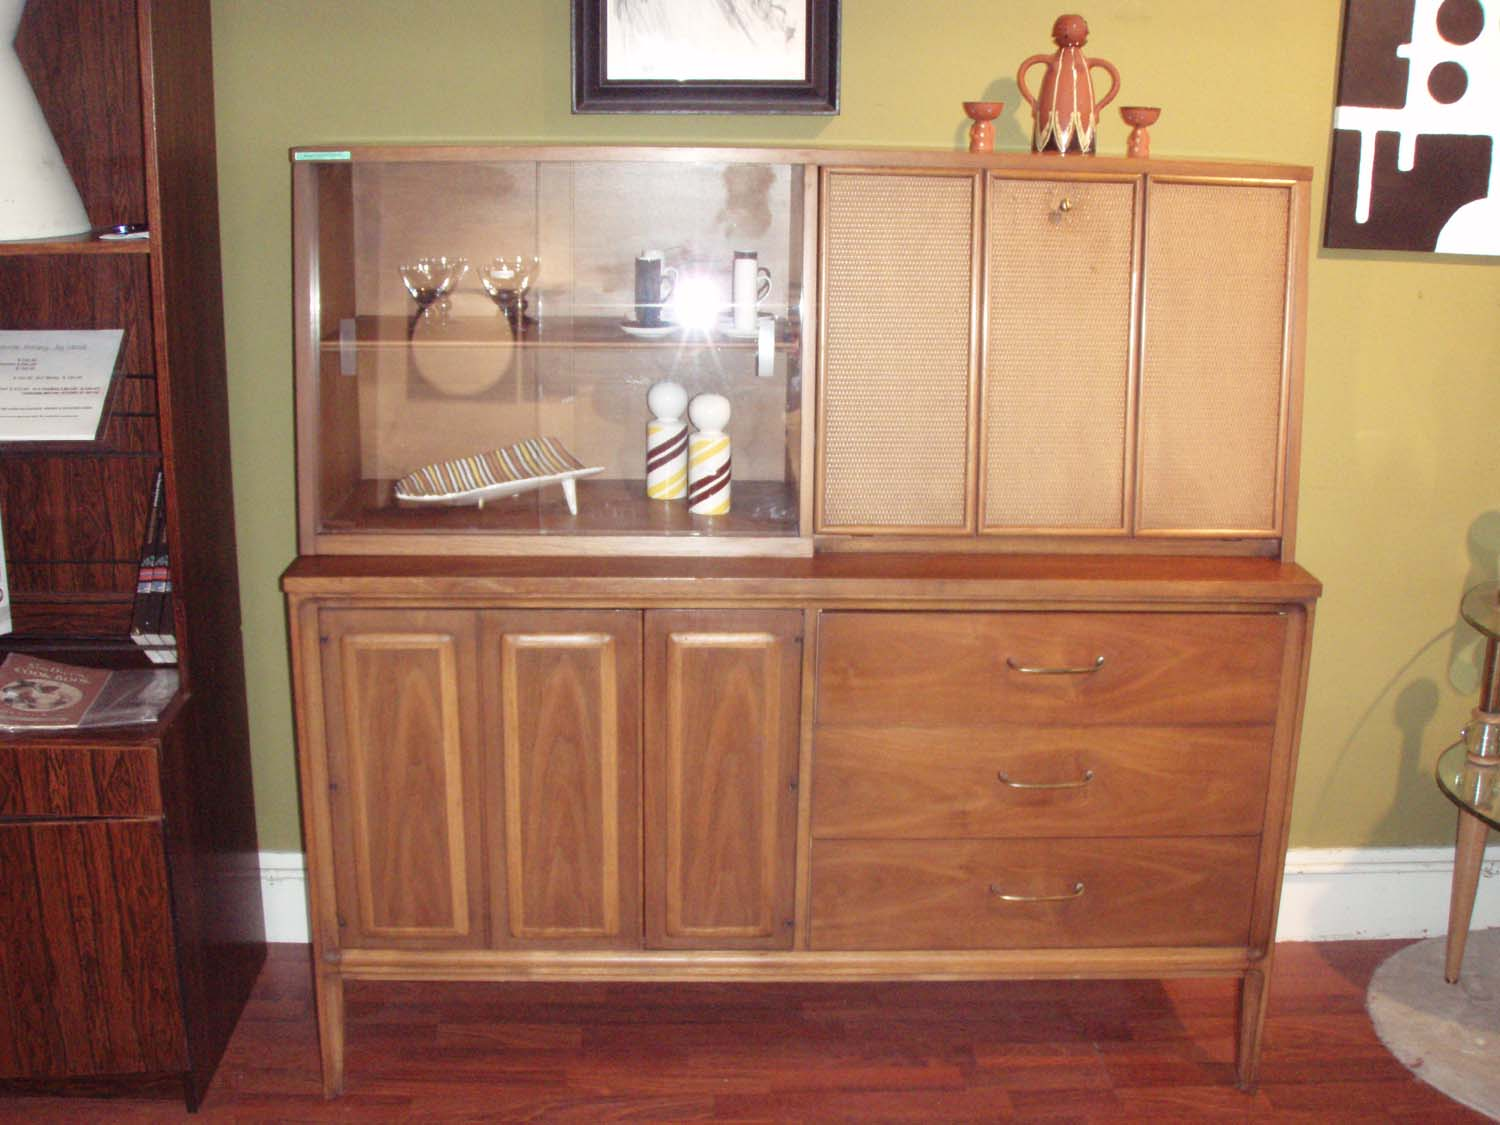 """Danish modern walnut credenza and china cabinet/bar hutch. This piece is not to large or tall, and the hutch is removable. There is open storage on left behind double door(panels) and then 3 generous drawers on the right. The top hutch has (2) glass sliders for display and a cool drop down bar w/ caning detail! 54""""L x 18""""D x54 1/2""""H  (31""""H without hutch) $1195.00  (SALE $999.00)  Shipping to NY or Florida $395.00 including insurance and white glove delivery!"""